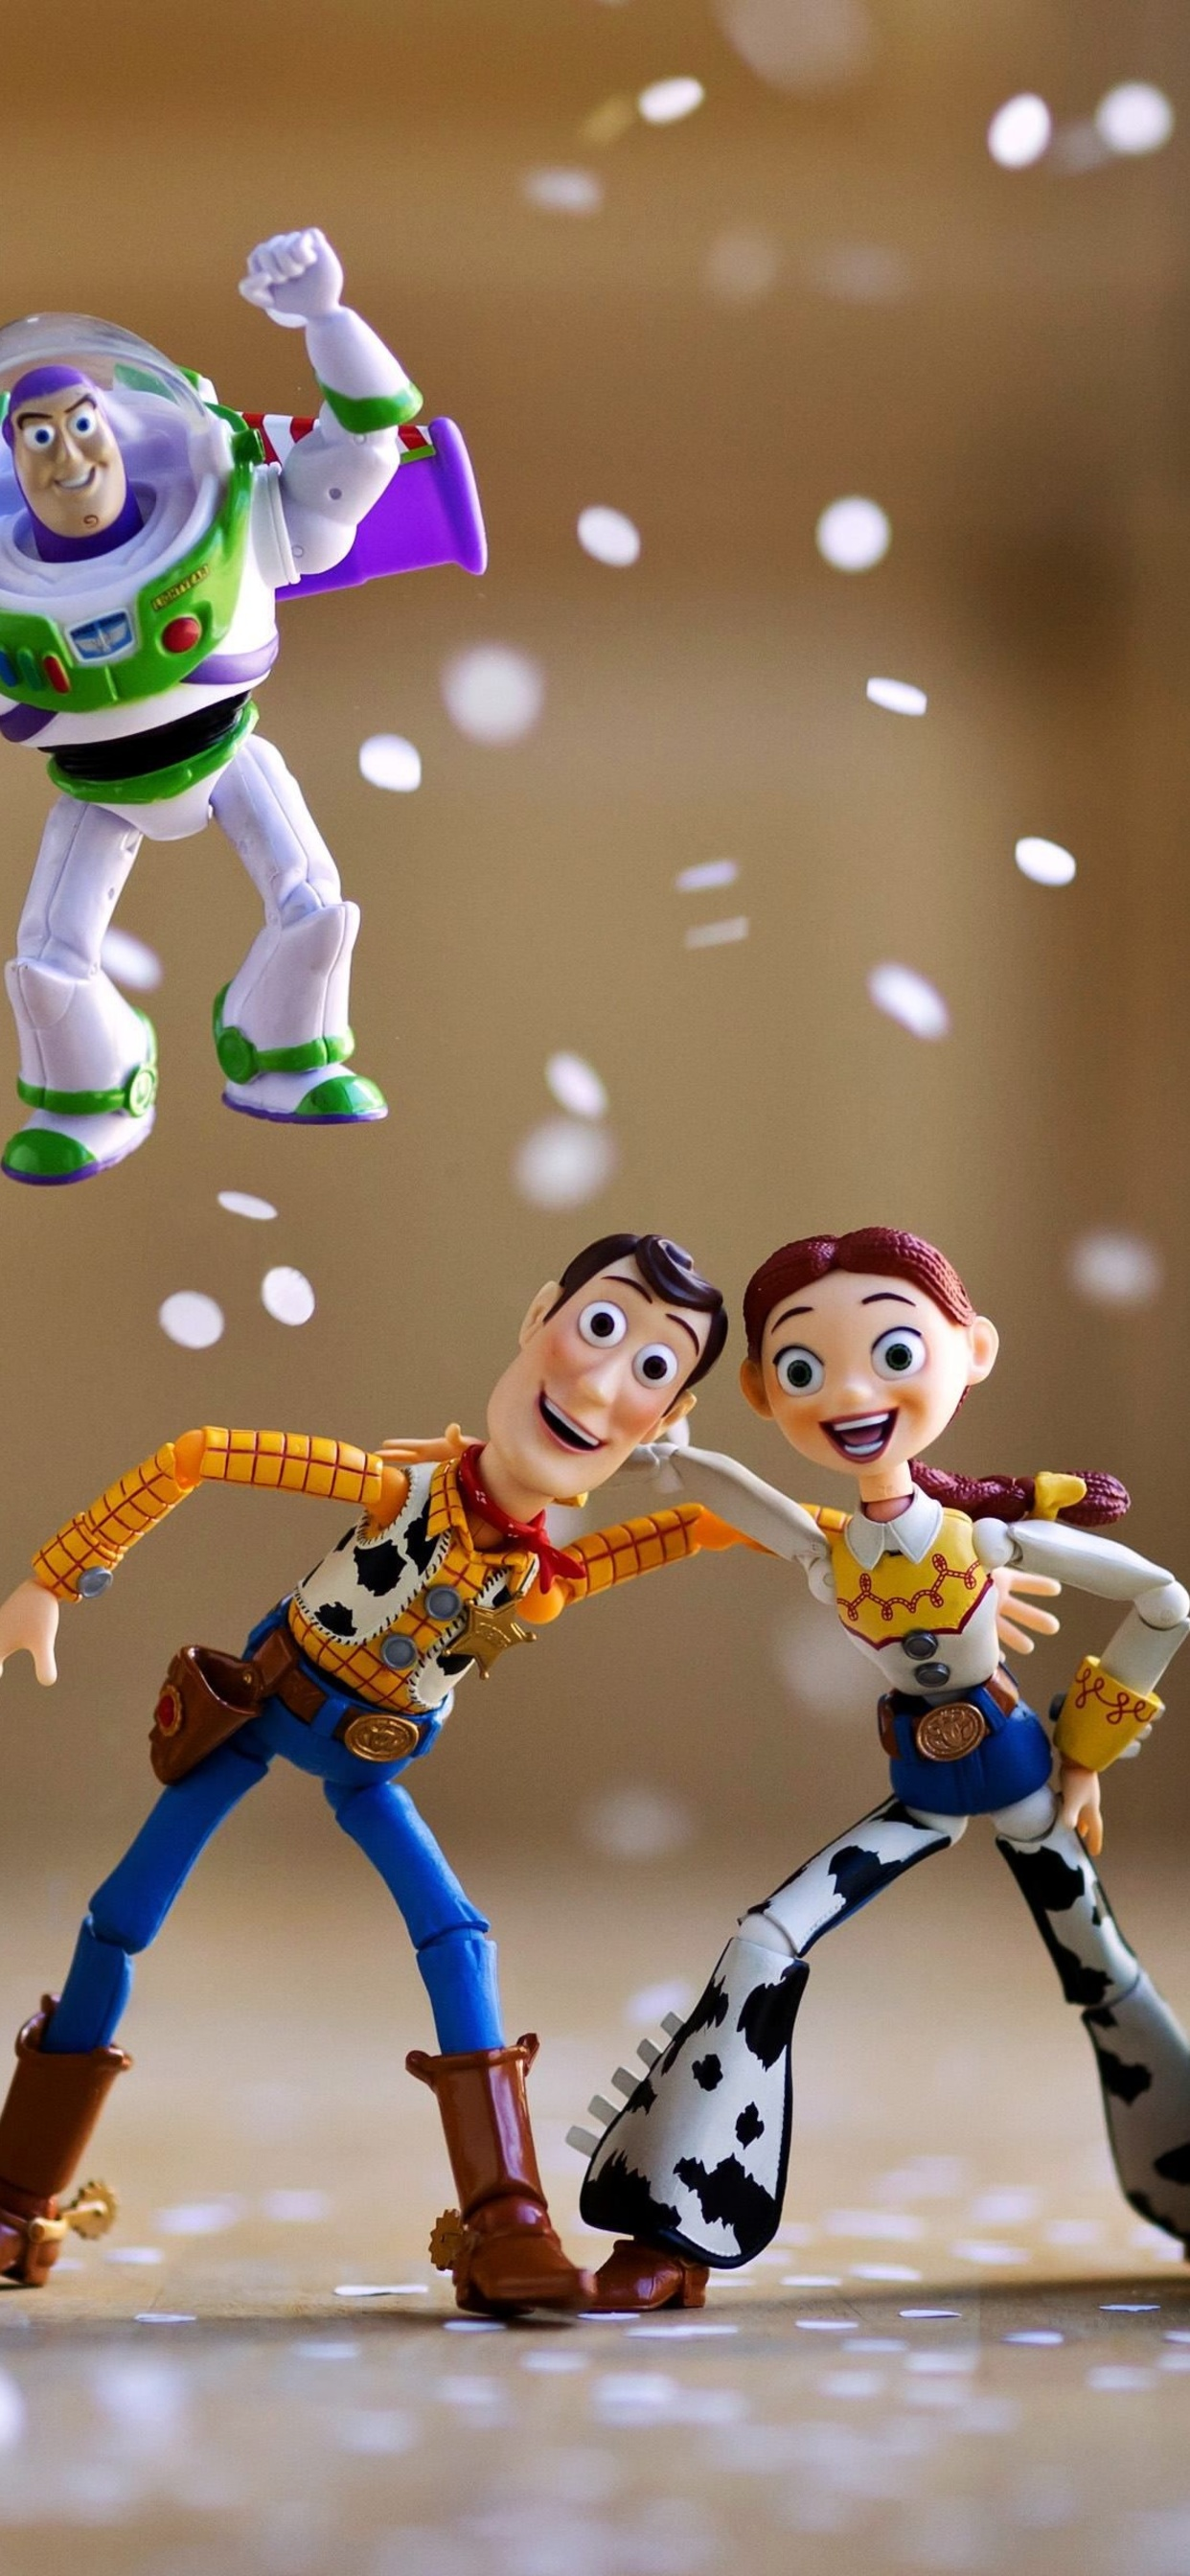 1242x2688 Toy Story Photography Iphone Xs Max Hd 4k